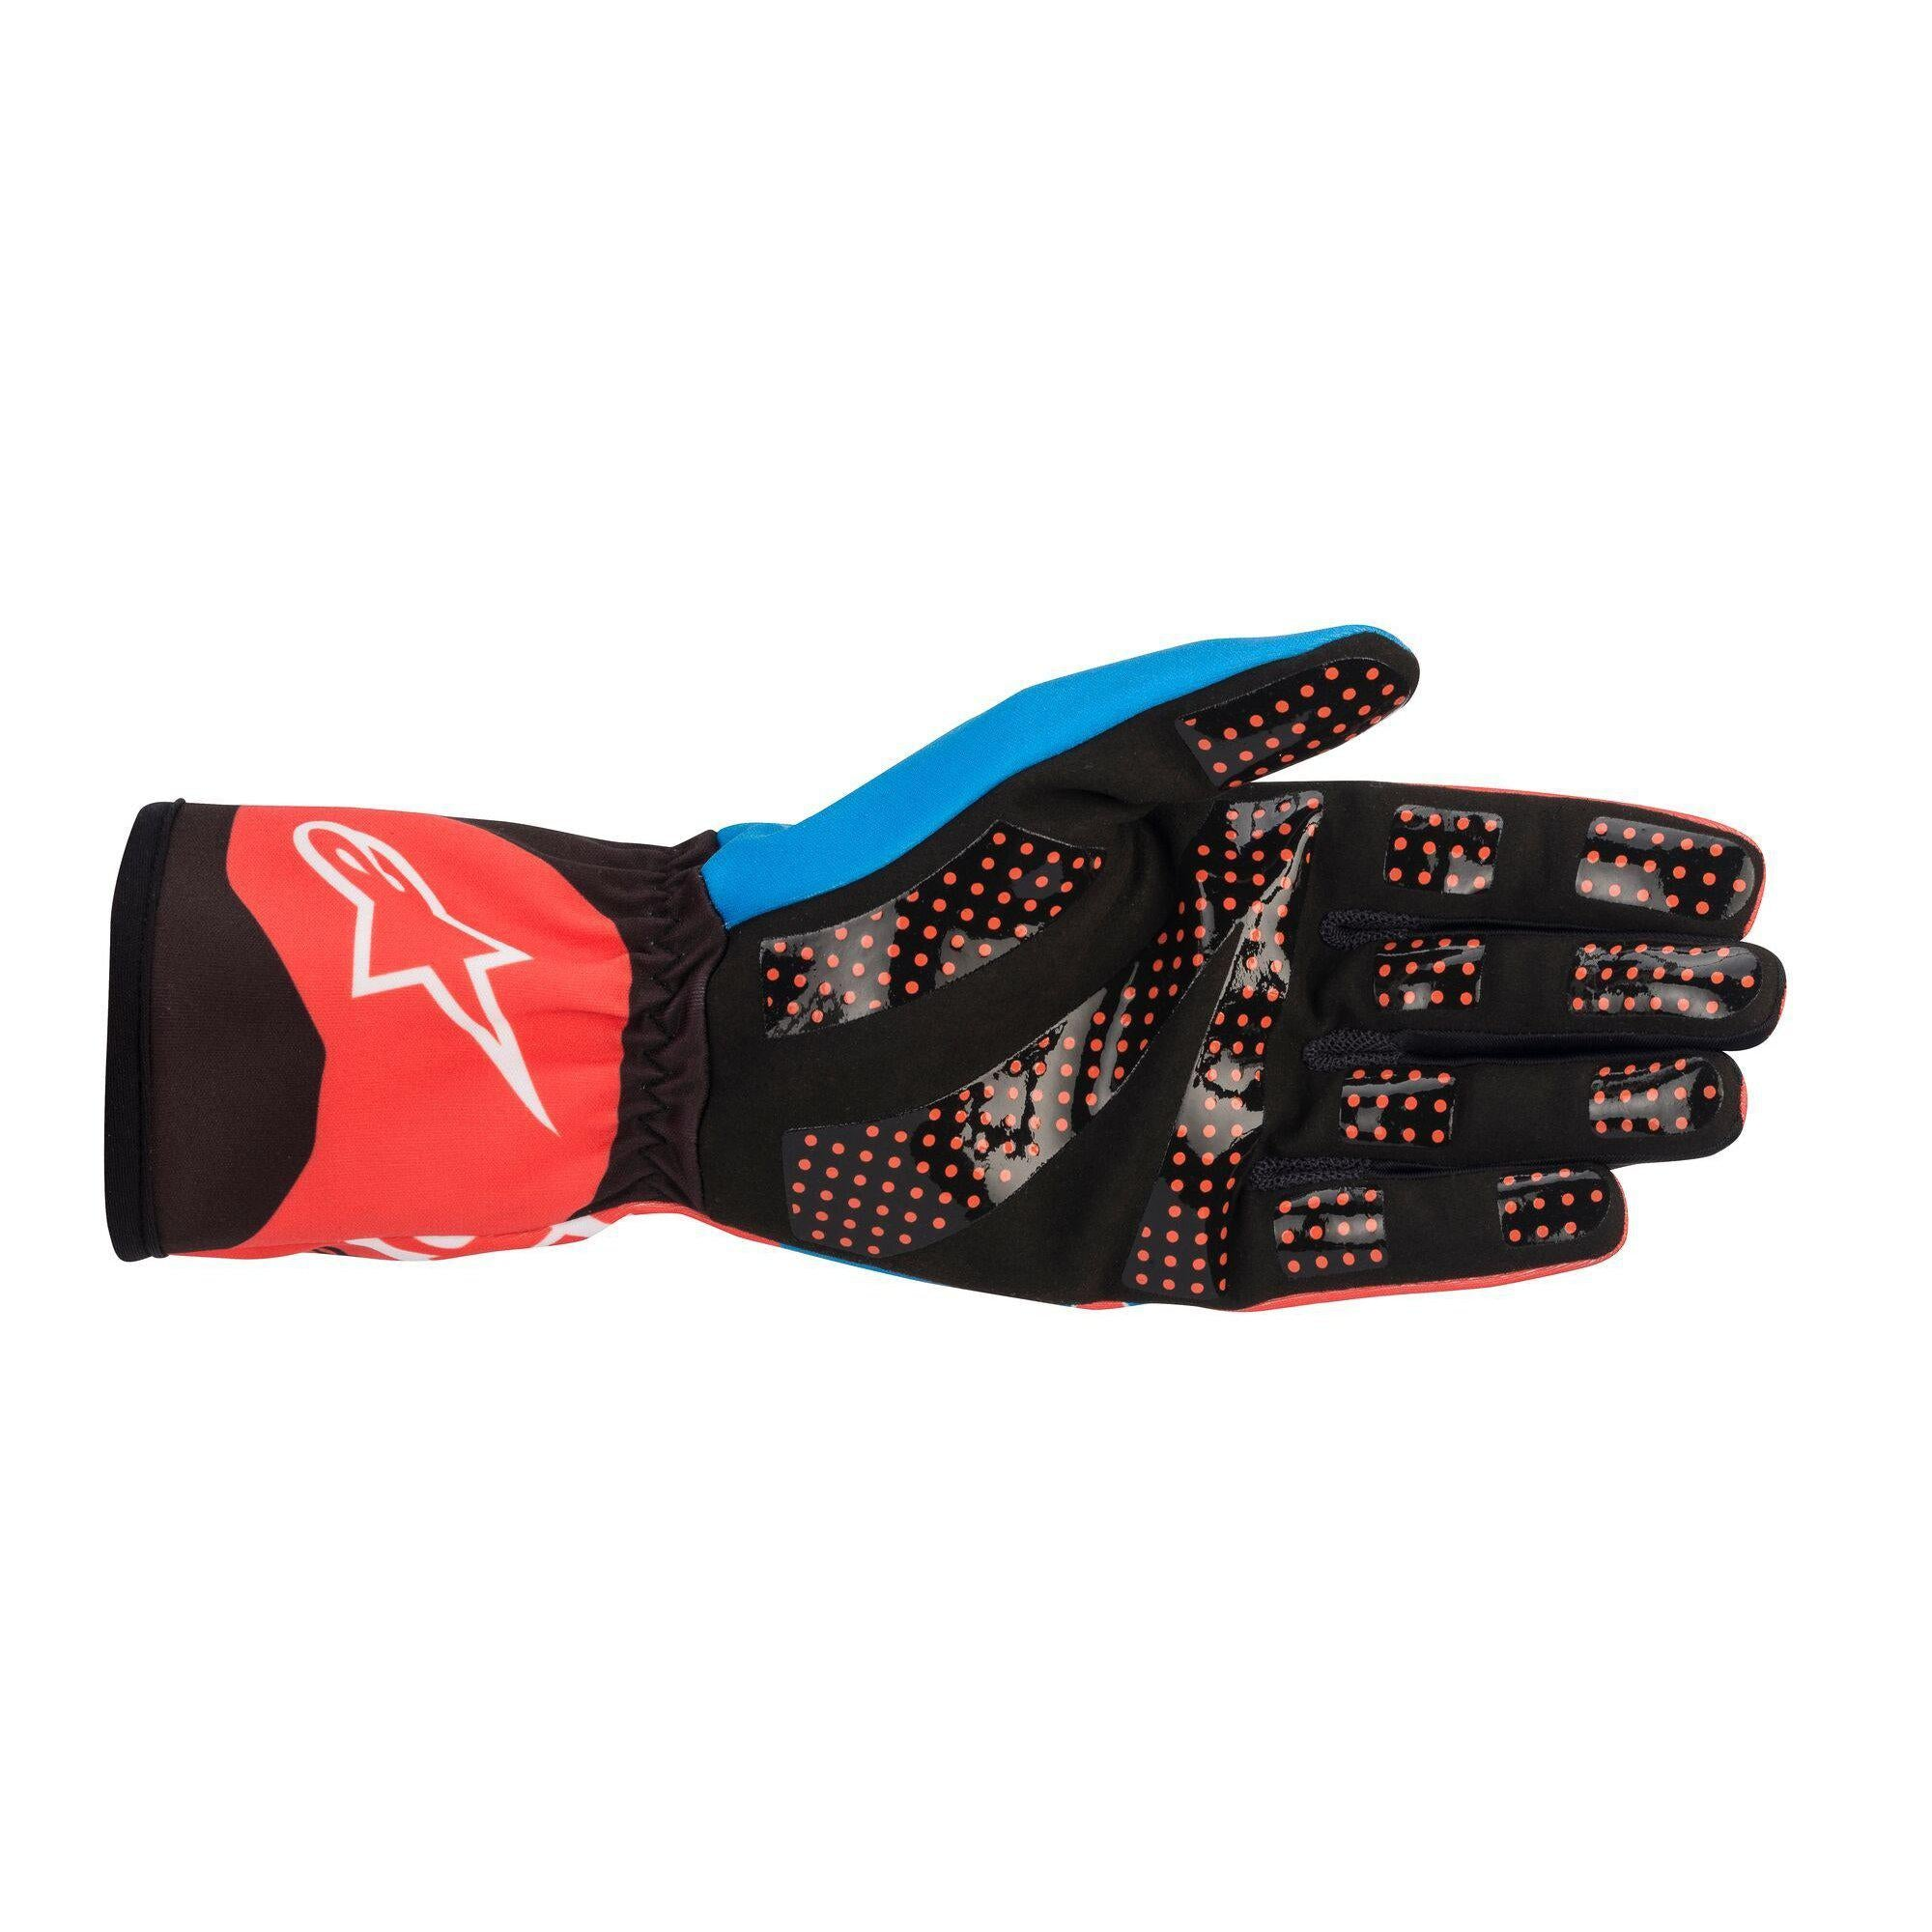 Tech-1 K Race V2 Glove